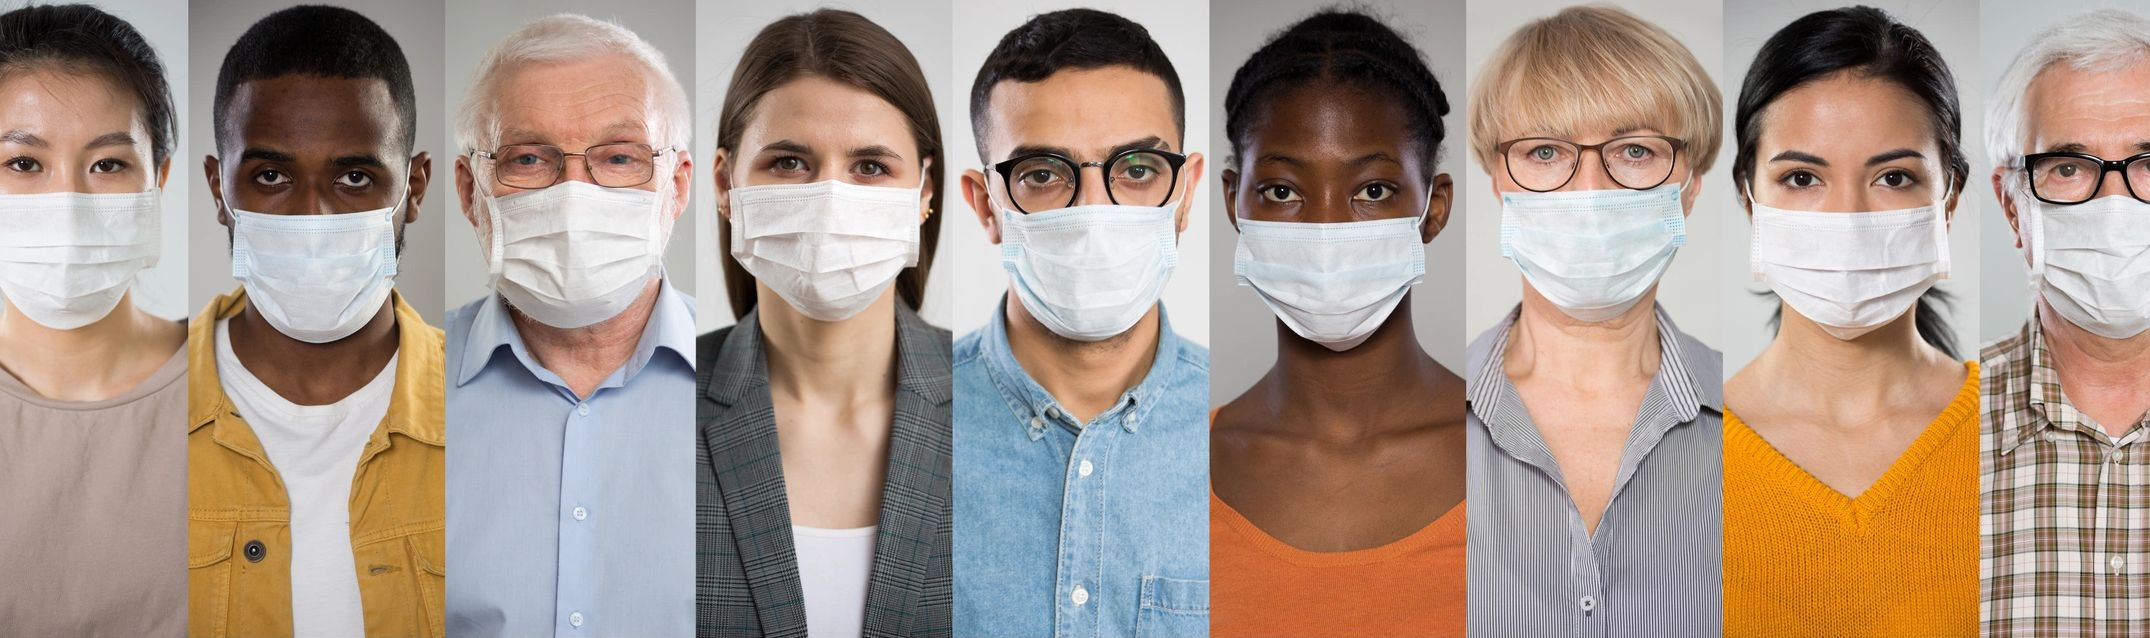 multi-ethnic Americans all wearing surgical masks.